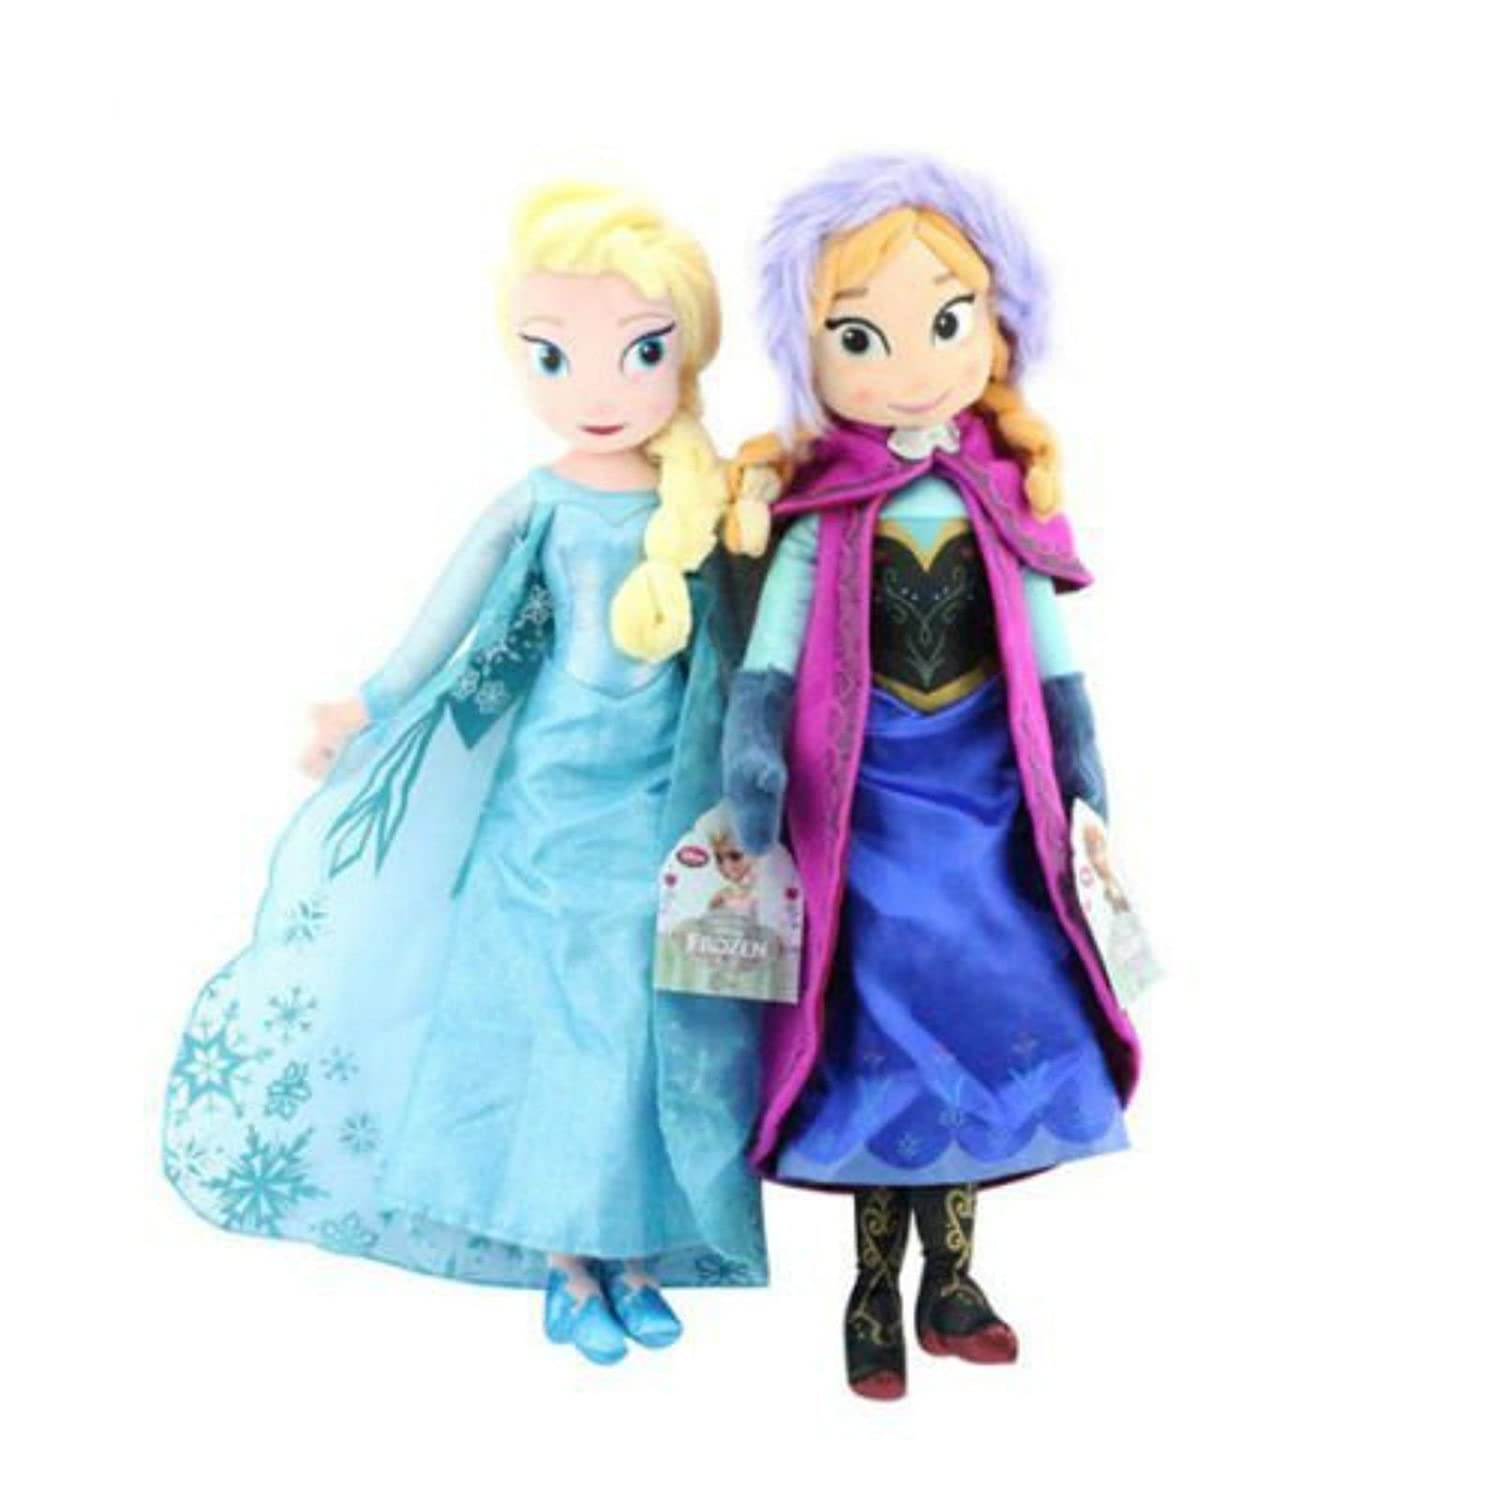 Vanvene Seller Birthday Gift 16 Elsa& Anna Princess Stuffed Plush Doll